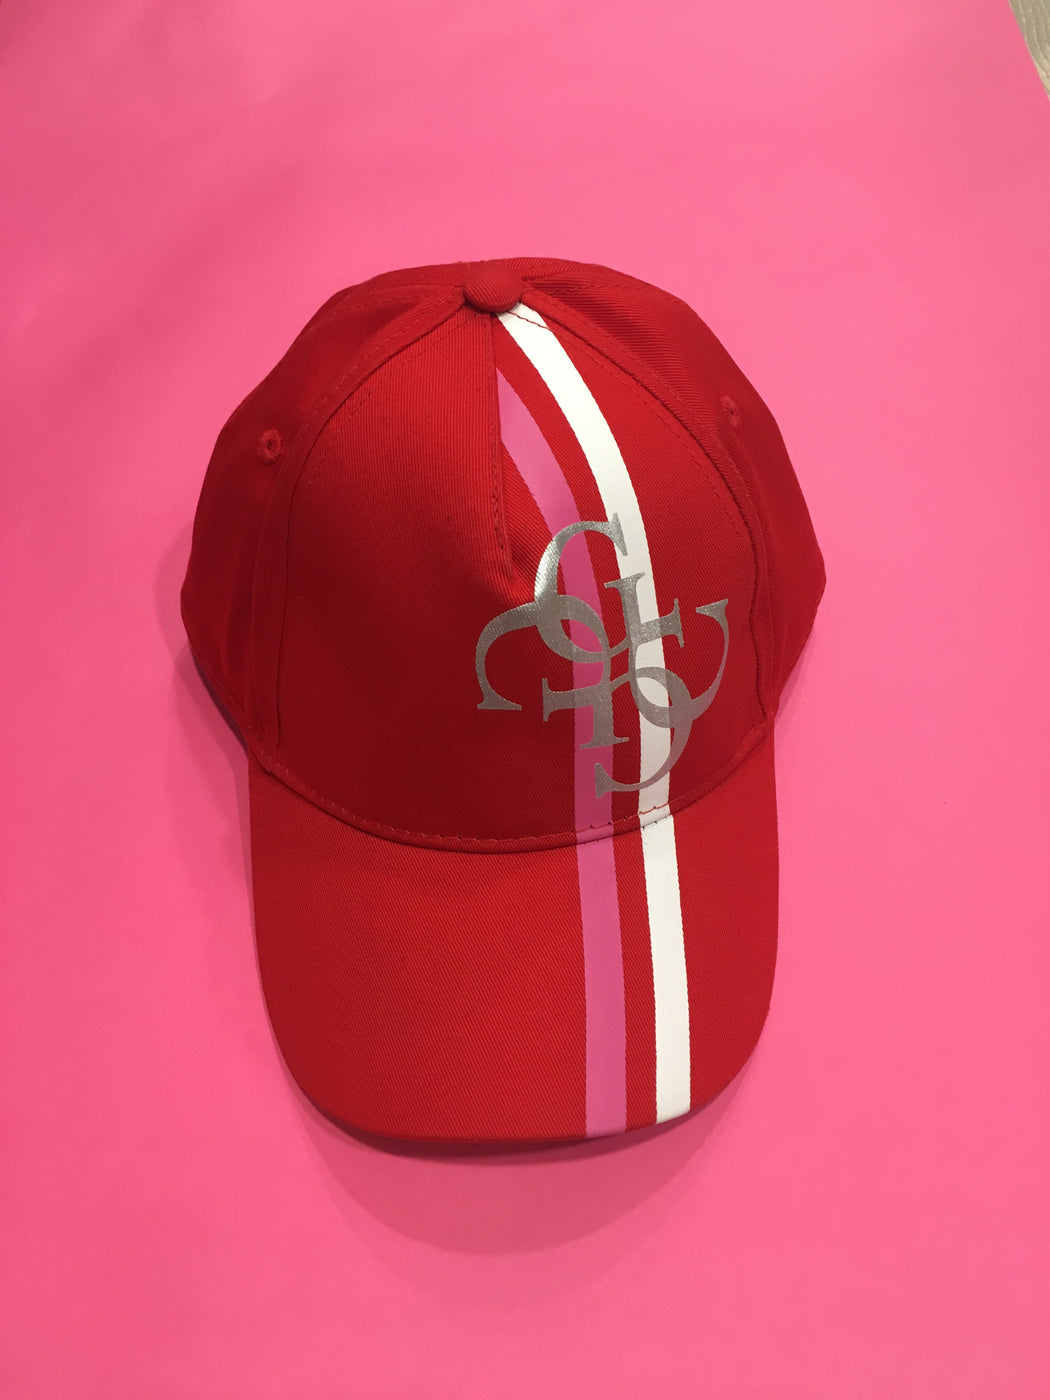 Baseball hat in red